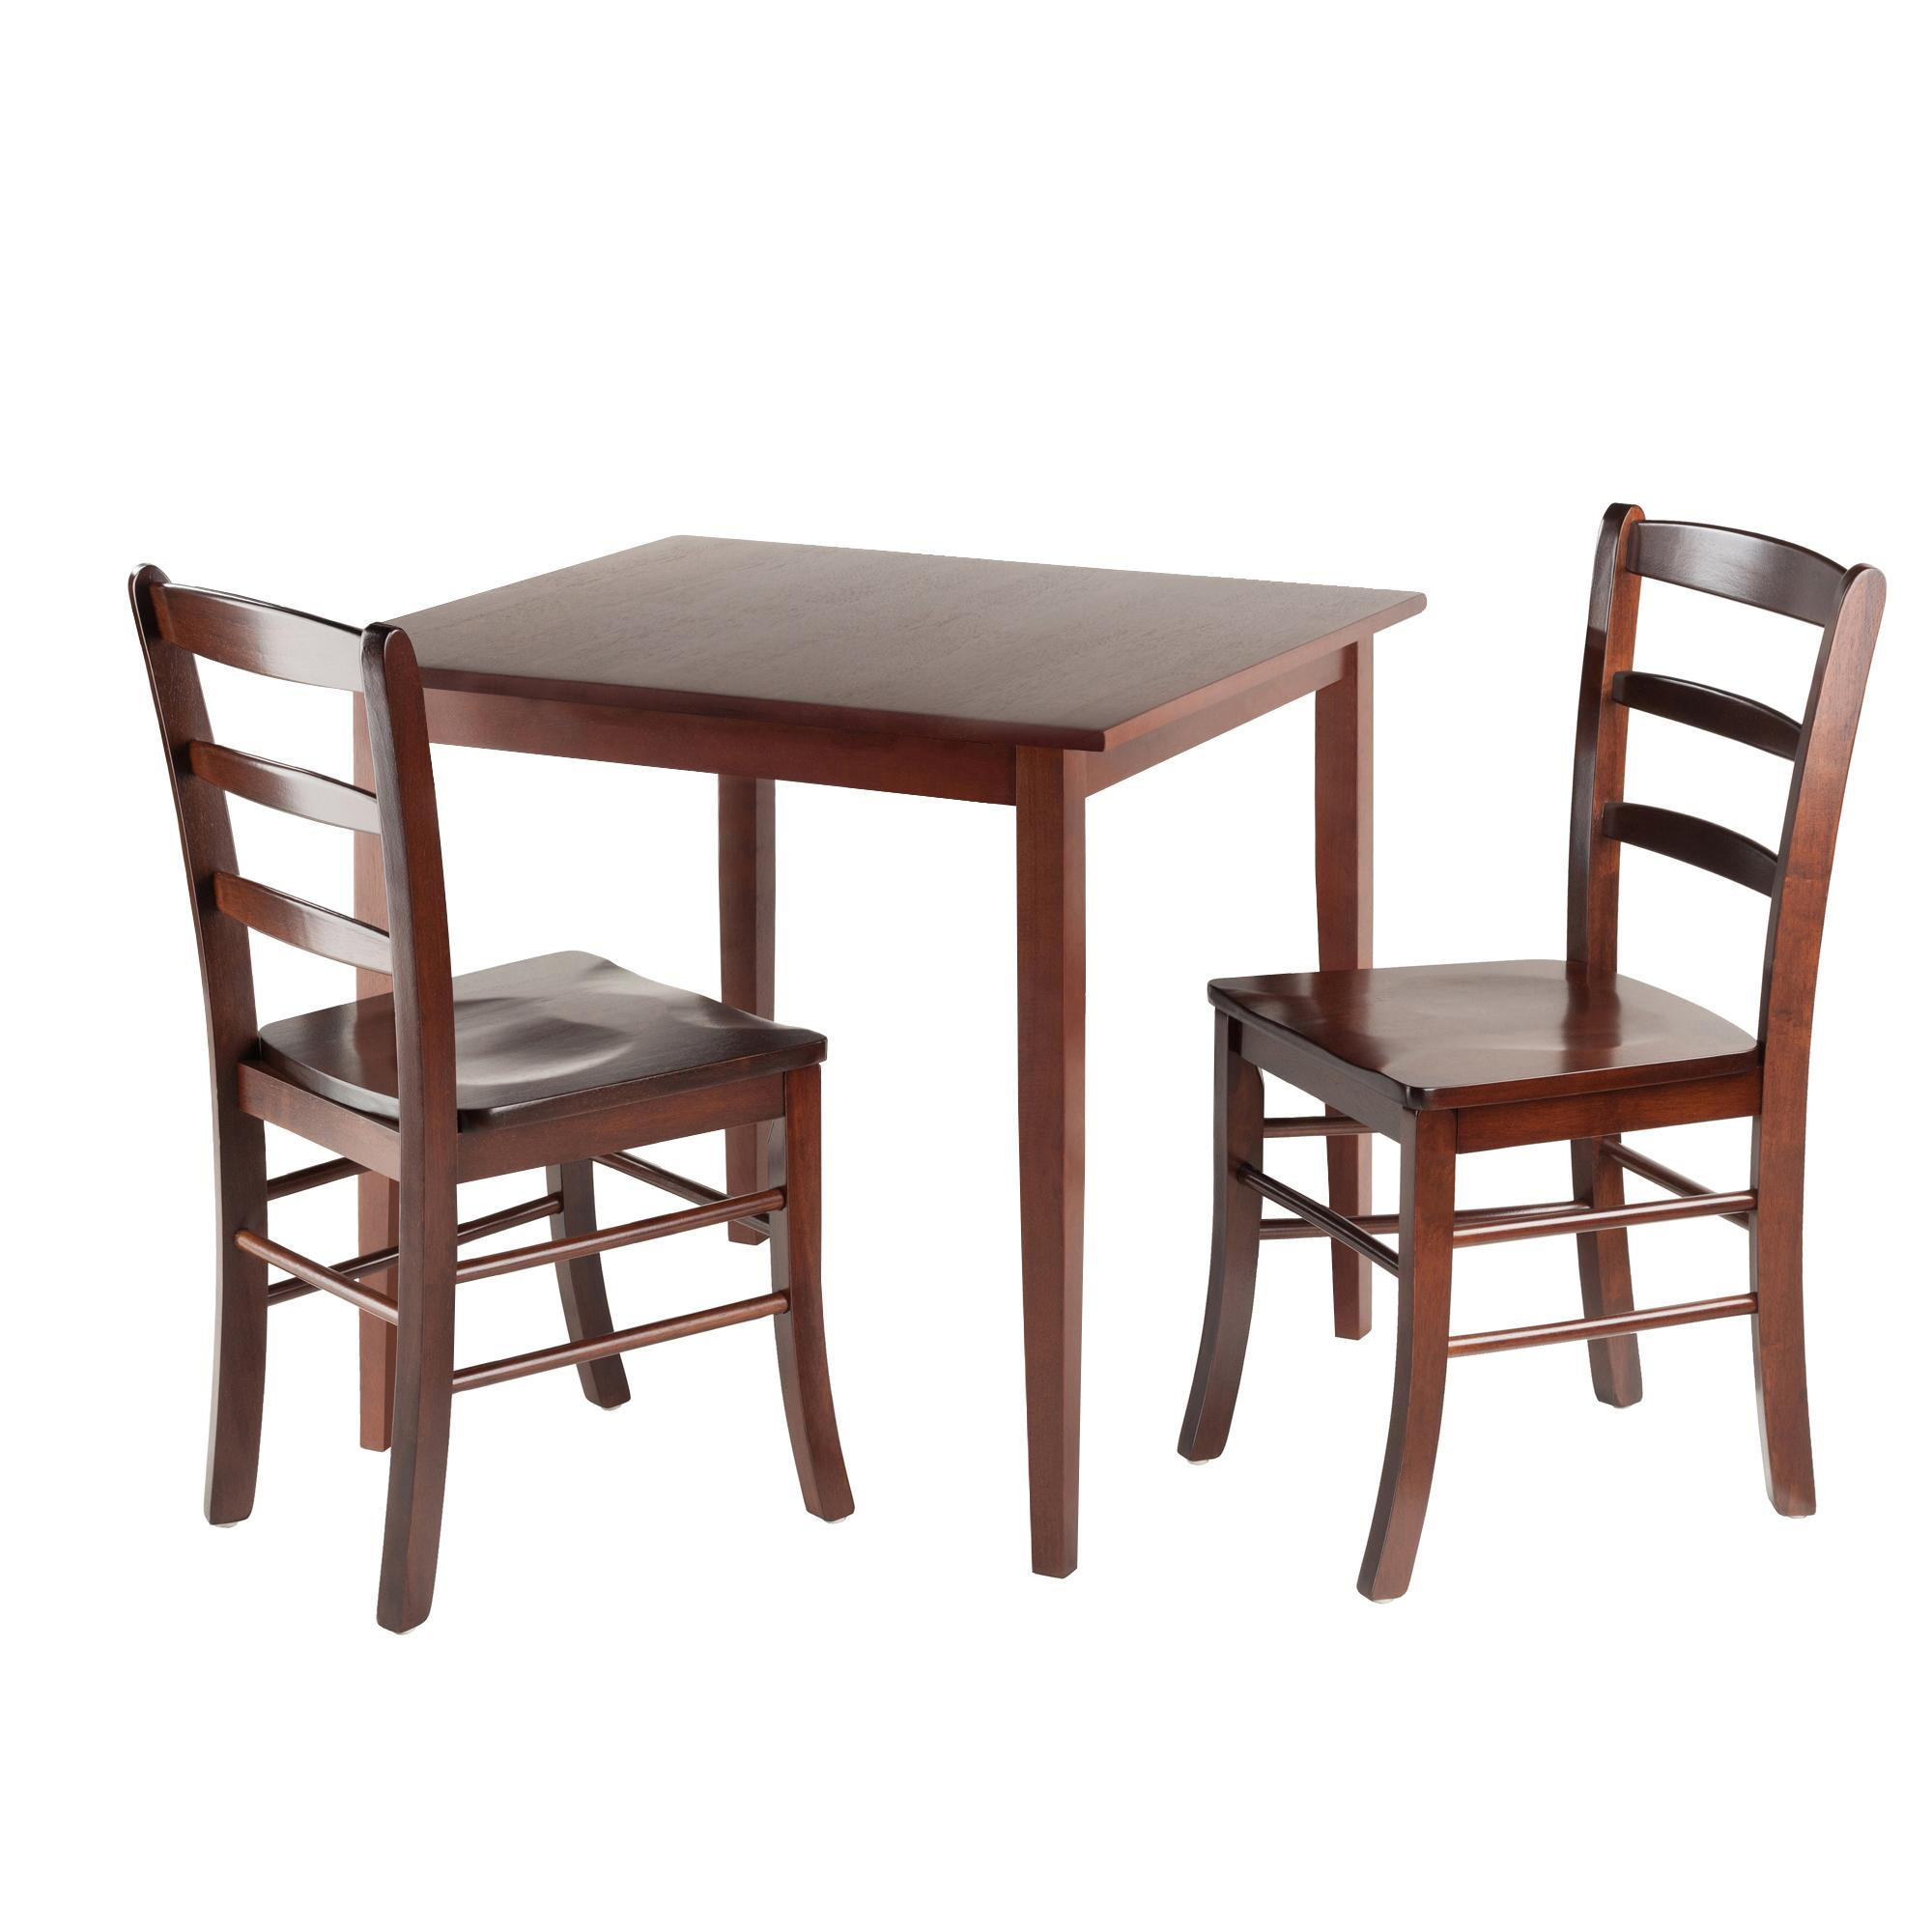 Amazon.com - Winsome Groveland Square Dining Table with 2 Chairs ...